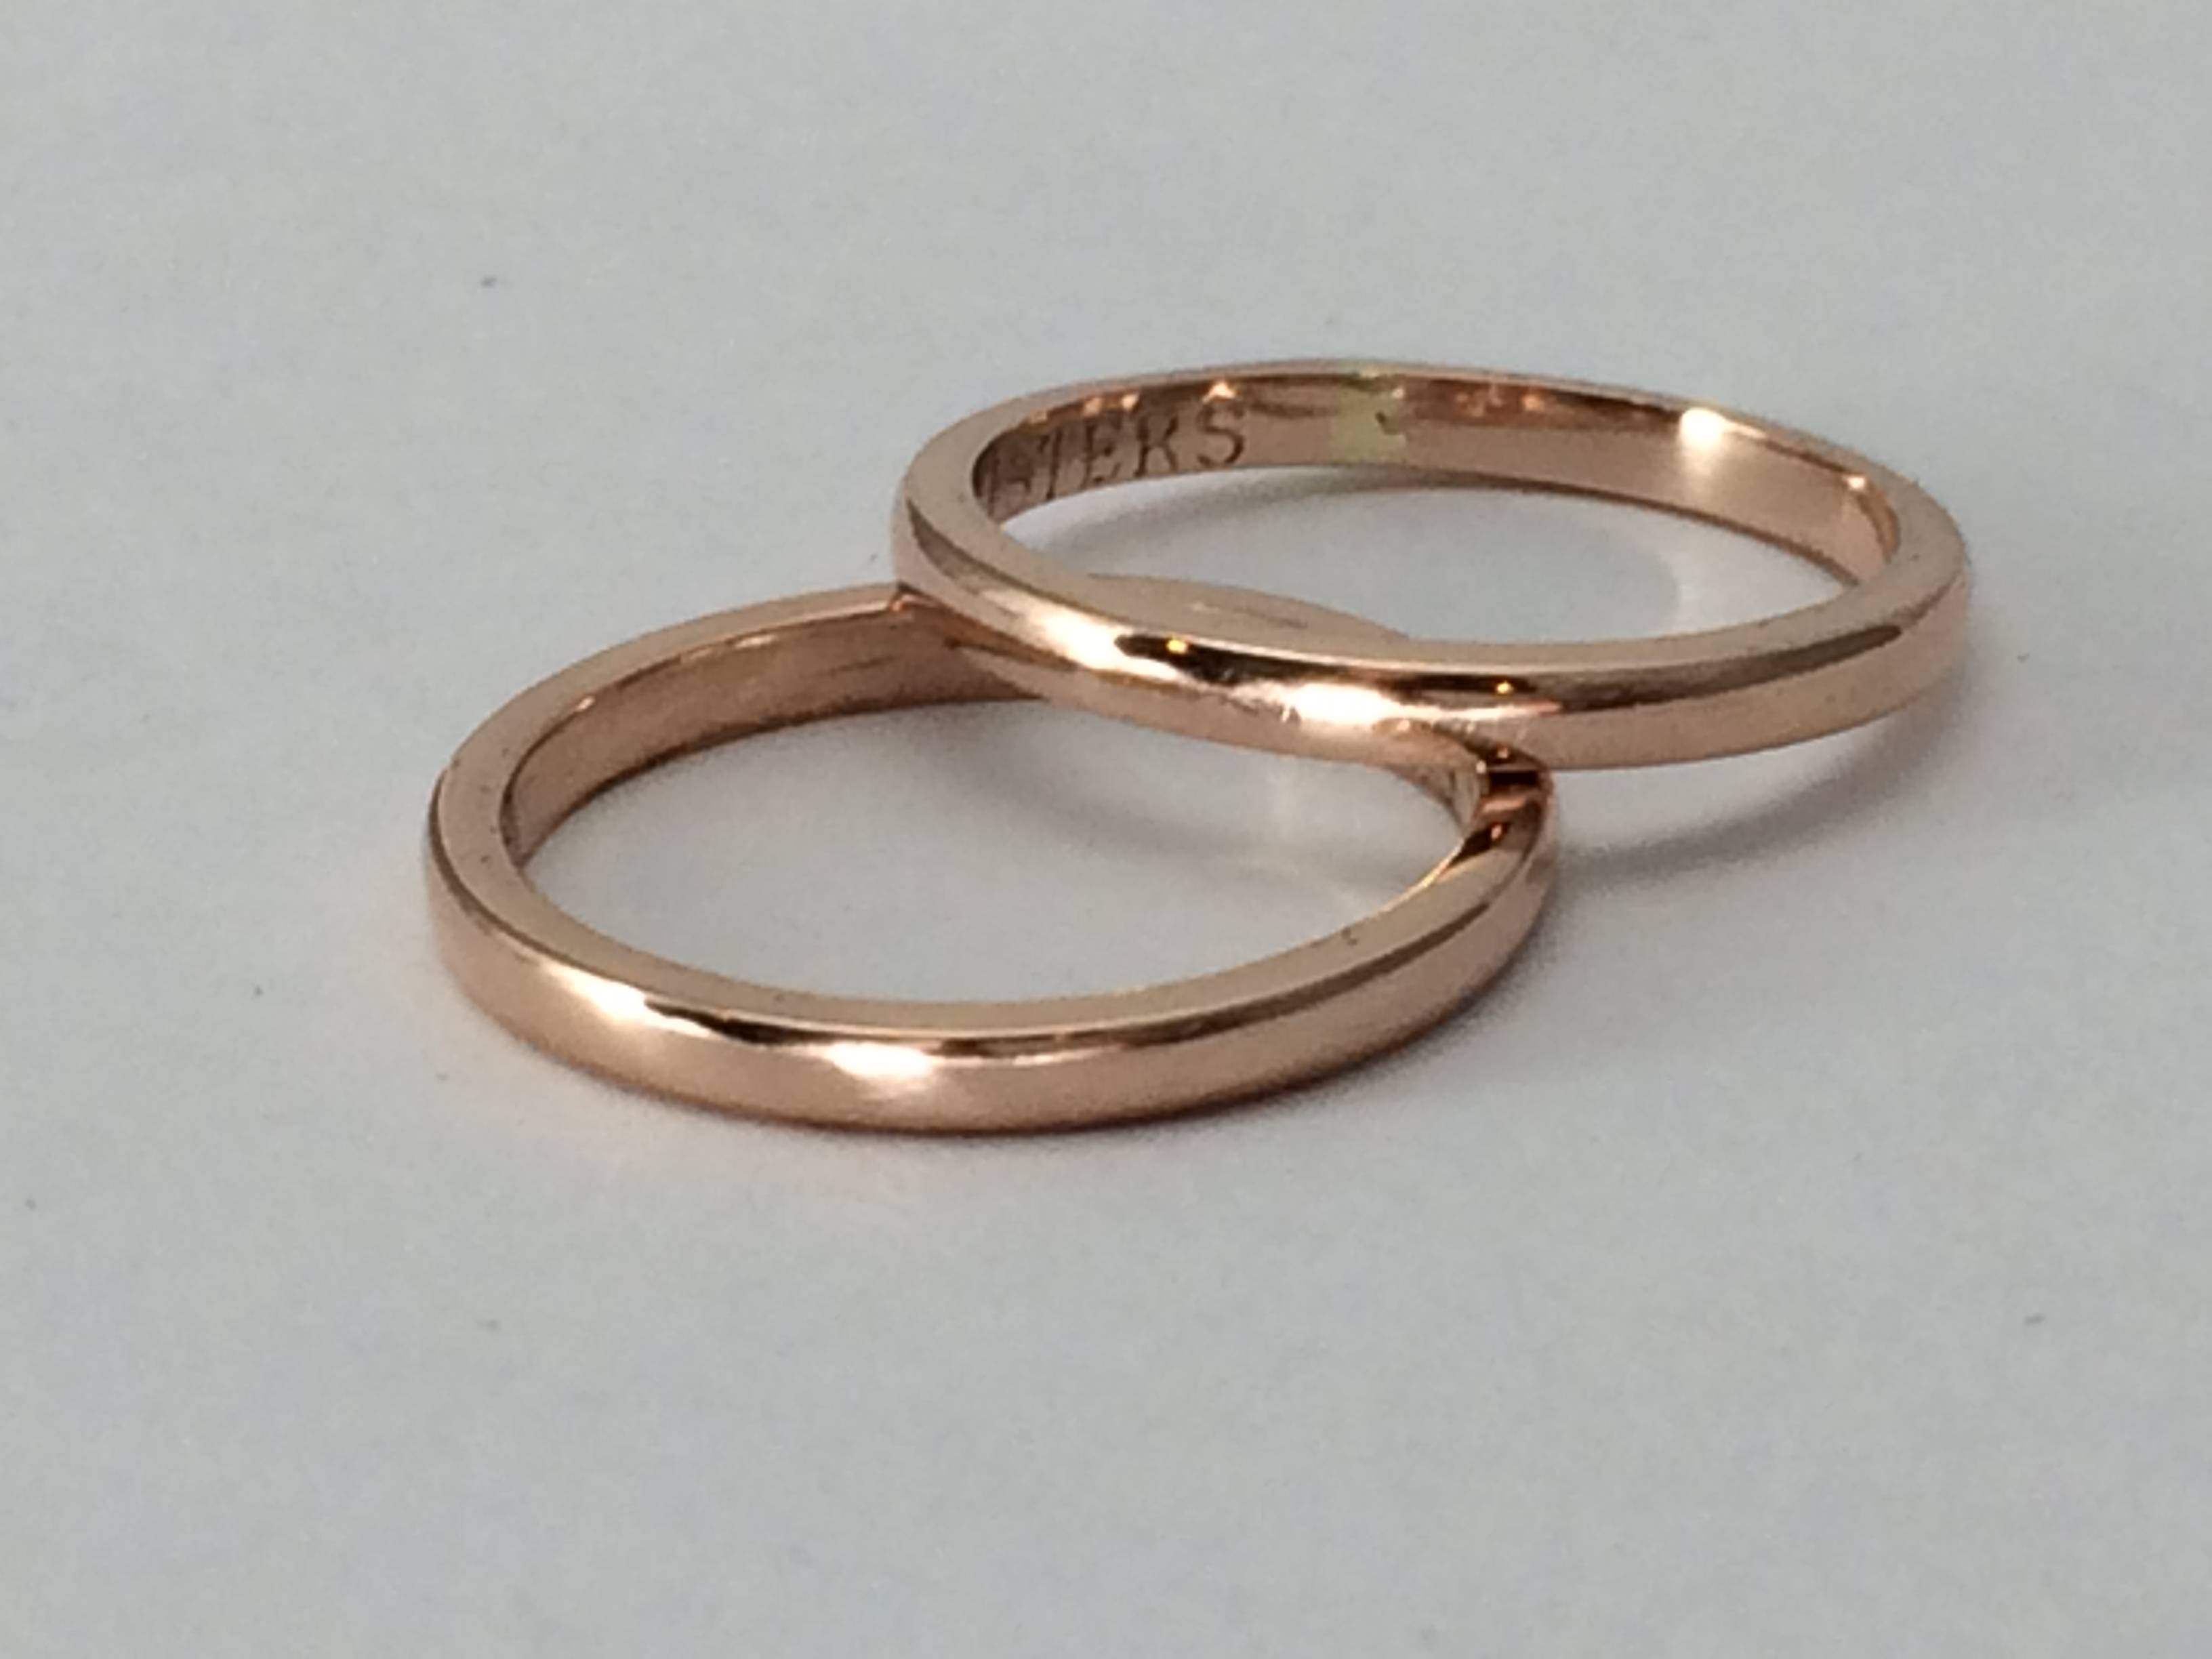 One Ring, 10Kt Gold, 12G Rose Or Yellow Gold Ring, 2Mm Wide, 1.5Mm Pertaining To 1.5 Mm Platinum Wedding Bands (Gallery 11 of 15)